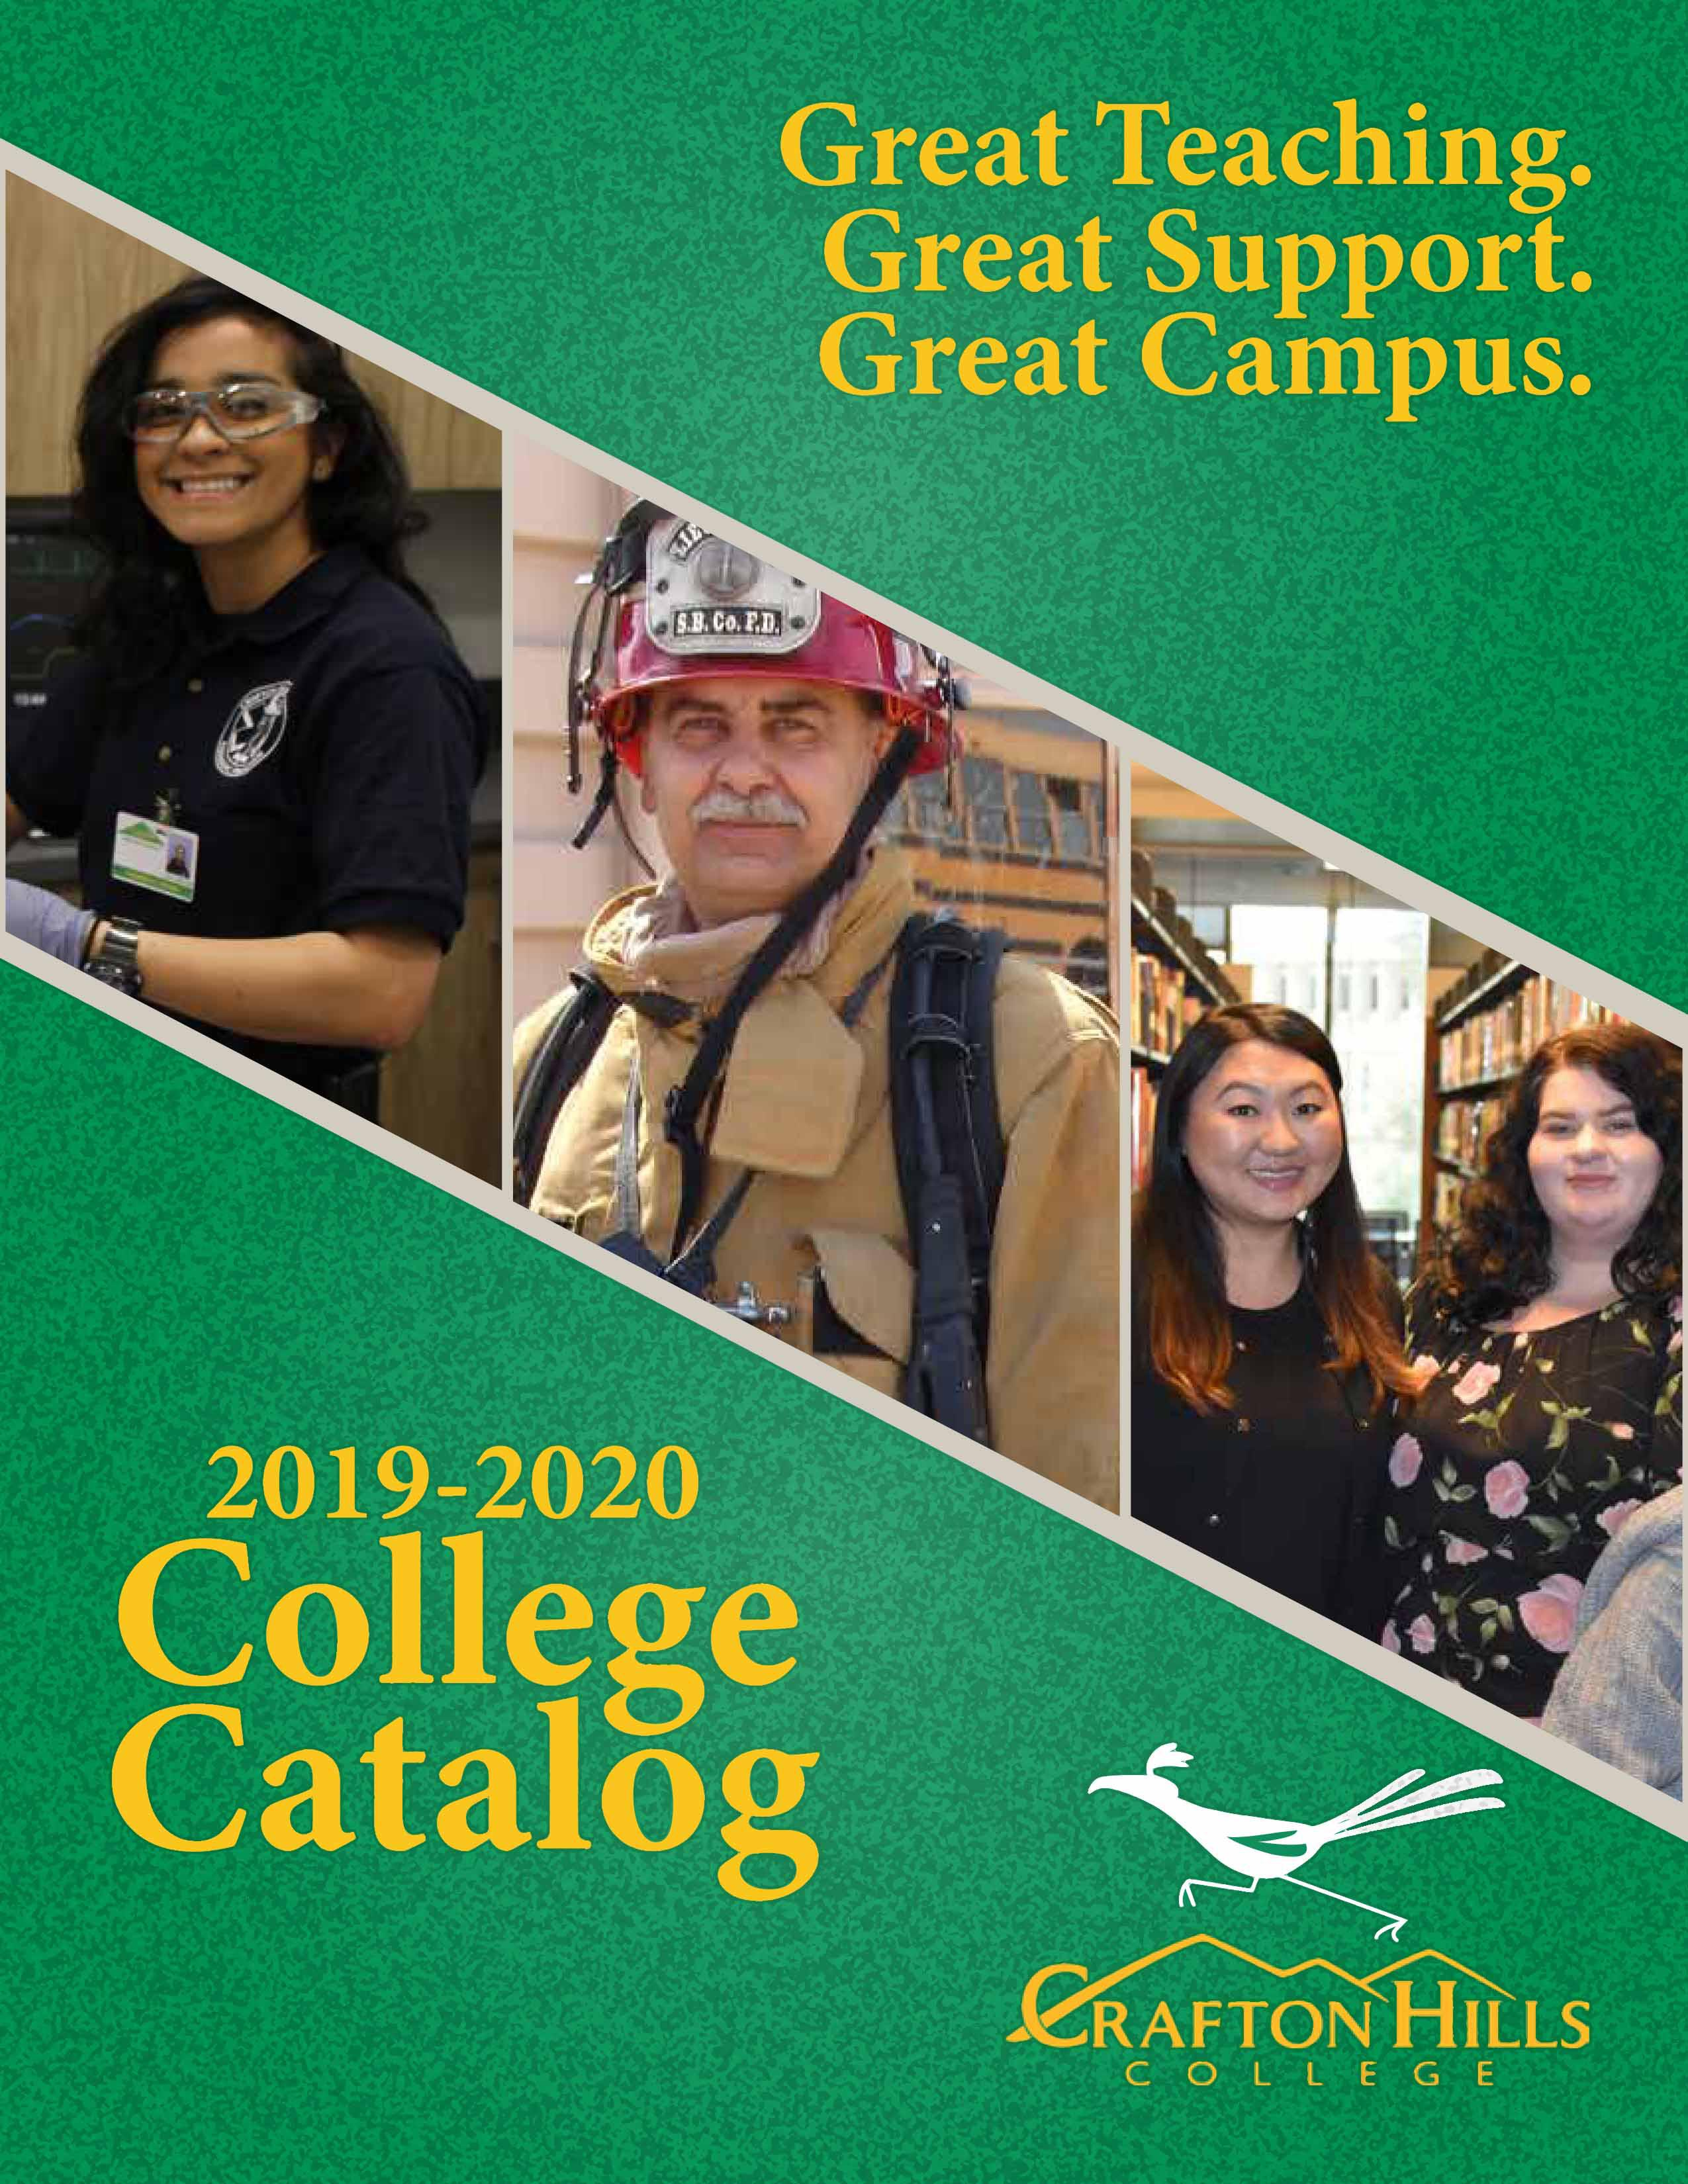 Great Teaching. Great Support. Great Campus. 2019-2020 Catalog - Crafton Hills College